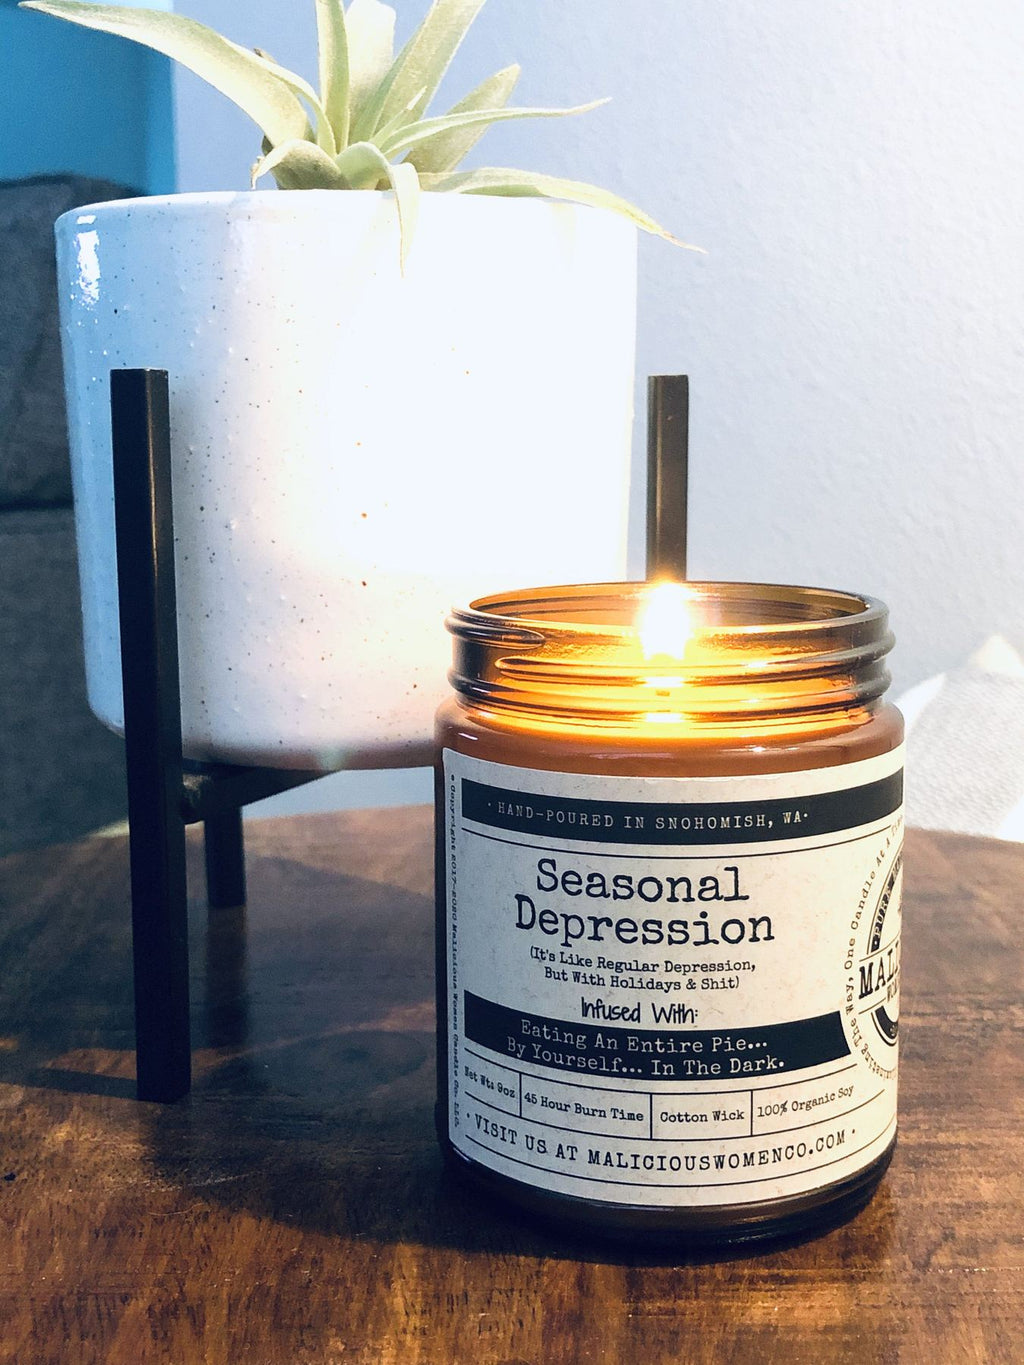 "Seasonal Depression (It's Like Regular Depression, But With Holidays & Shit) - Infused With ""Eating An Entire Pie...By Yourself...In The Dark. Scent: Hot Apple Pie - CityBarnCountryPenthouse"